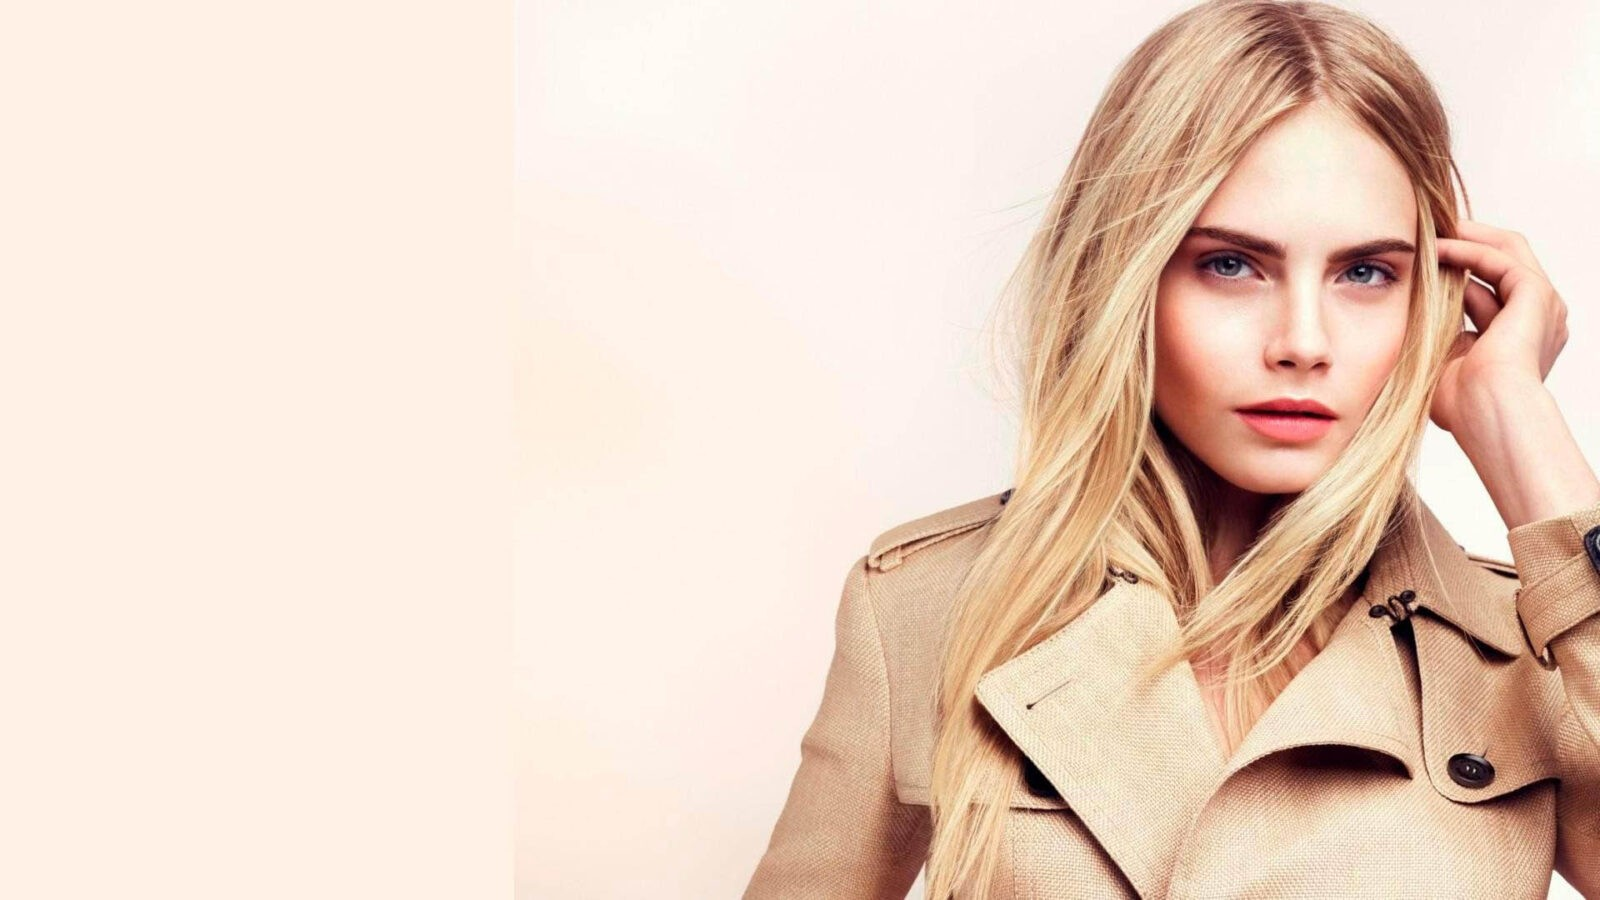 Cara Delevingne dressed in the coat, free image